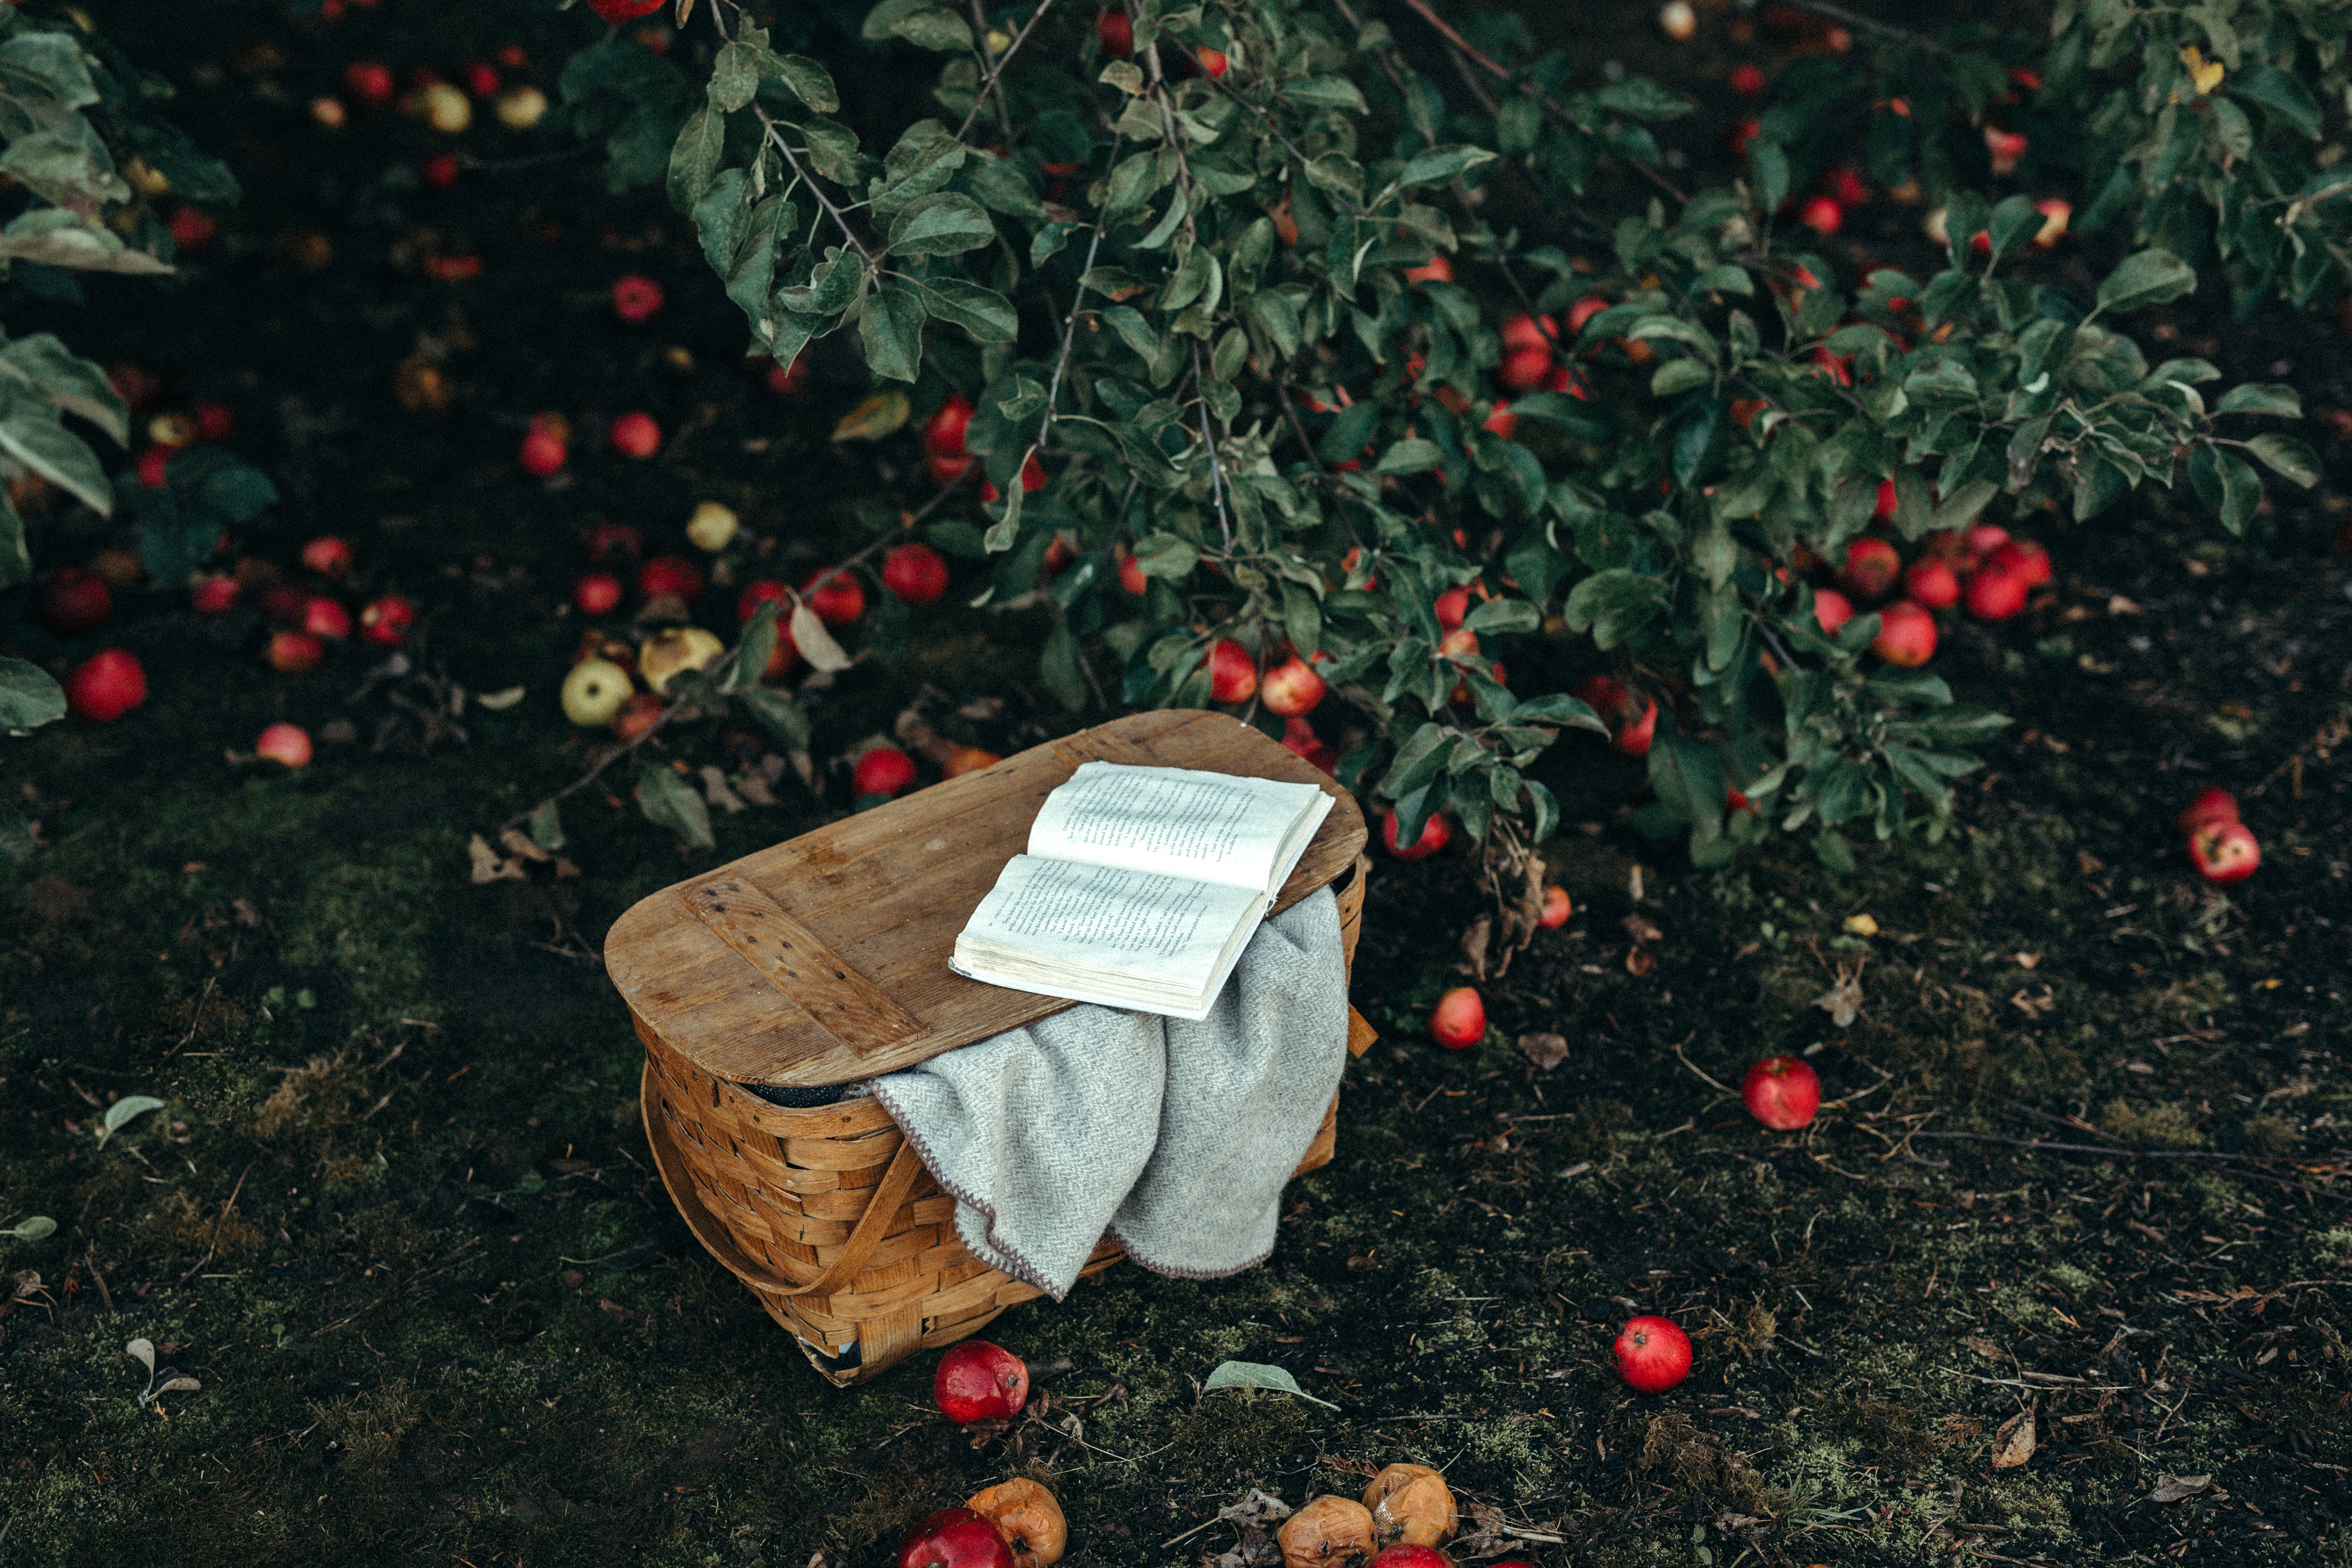 picnic basket with a book and blanket surrounded by apple trees